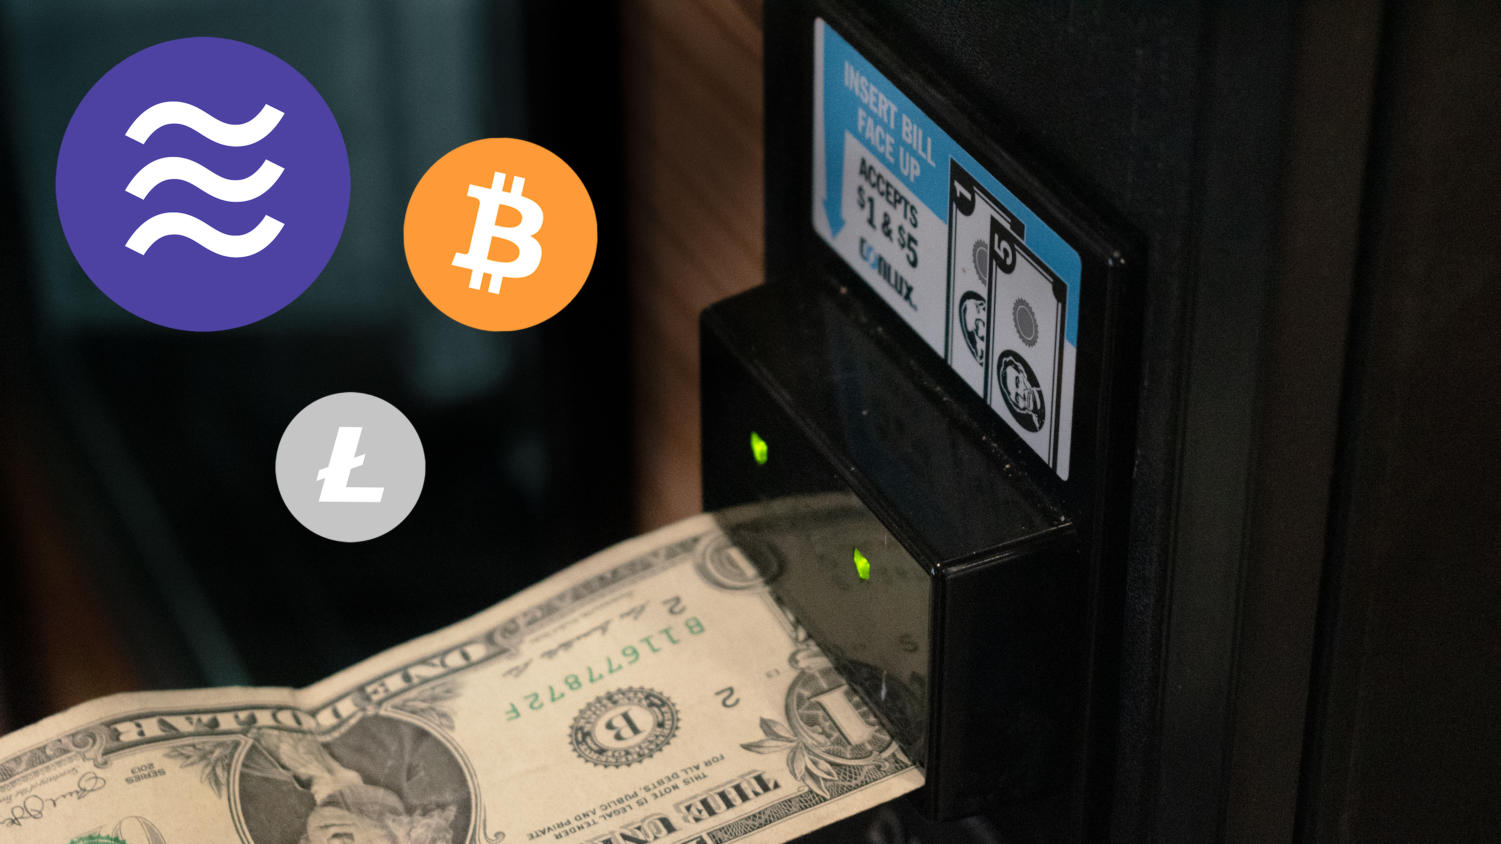 Libra aims to create a future where it will be possible to use cryptocurrencies  alongside cash and cards.